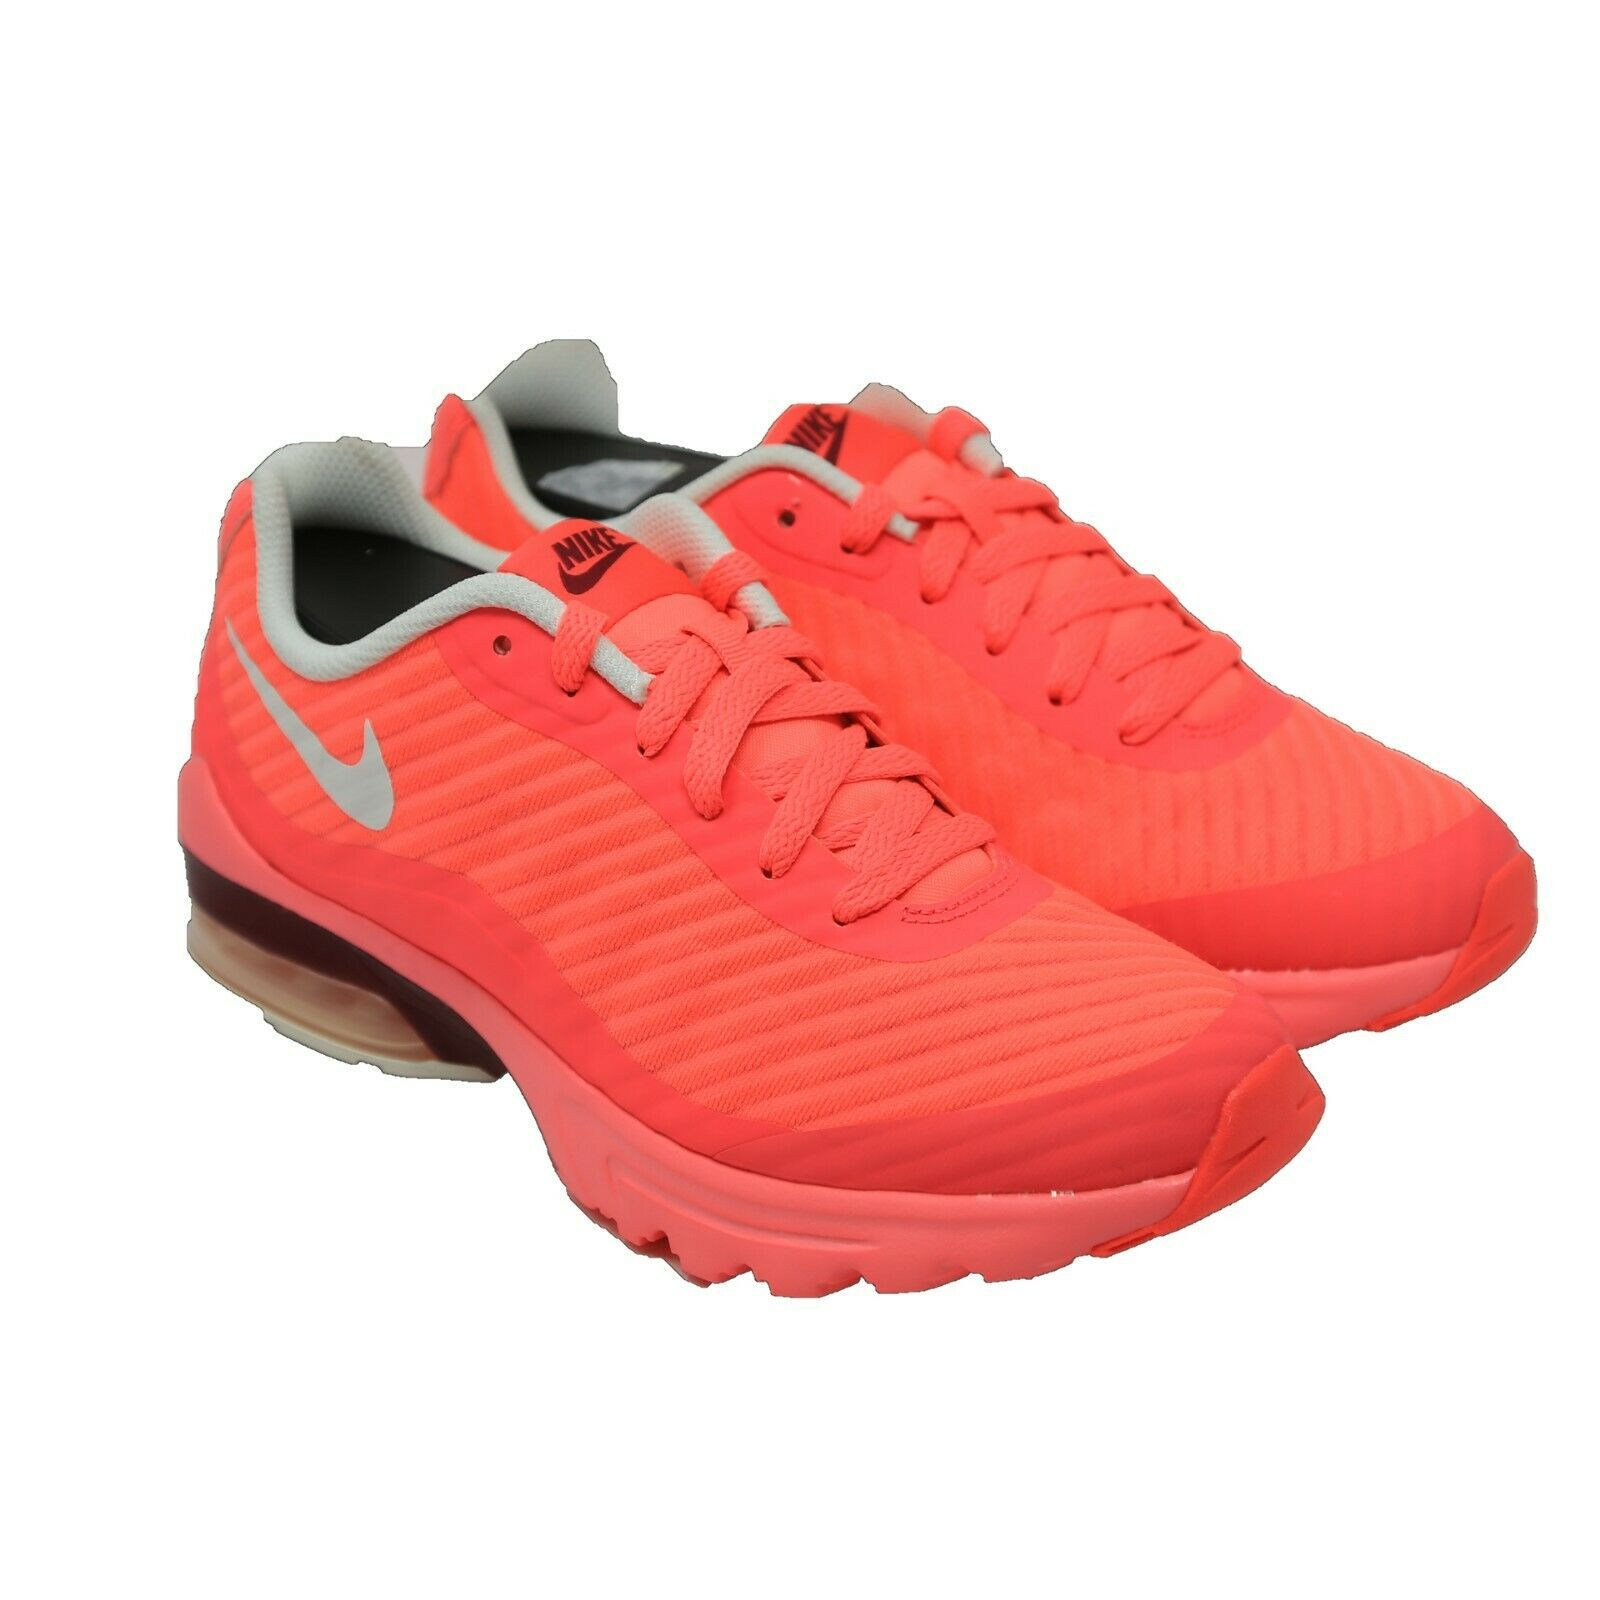 Nike Femme Air Max Invigor Se Chaussures and 50 similar items